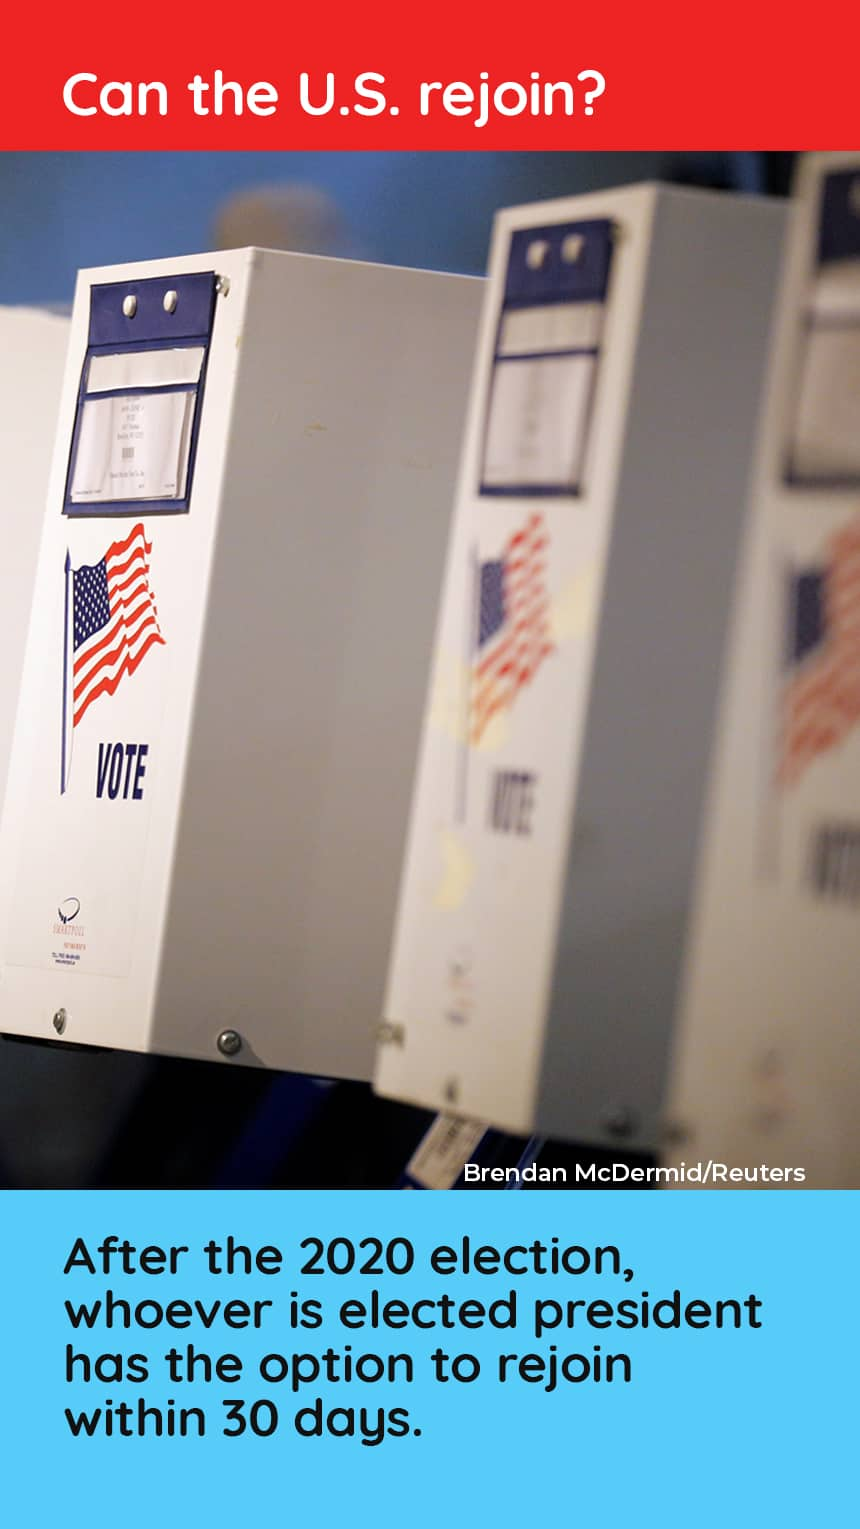 An image of ballot boxes TEXT: Can the U.S. rejoin? After the 2020 election, whomever is elected president has the option to rejoin within 30 days.